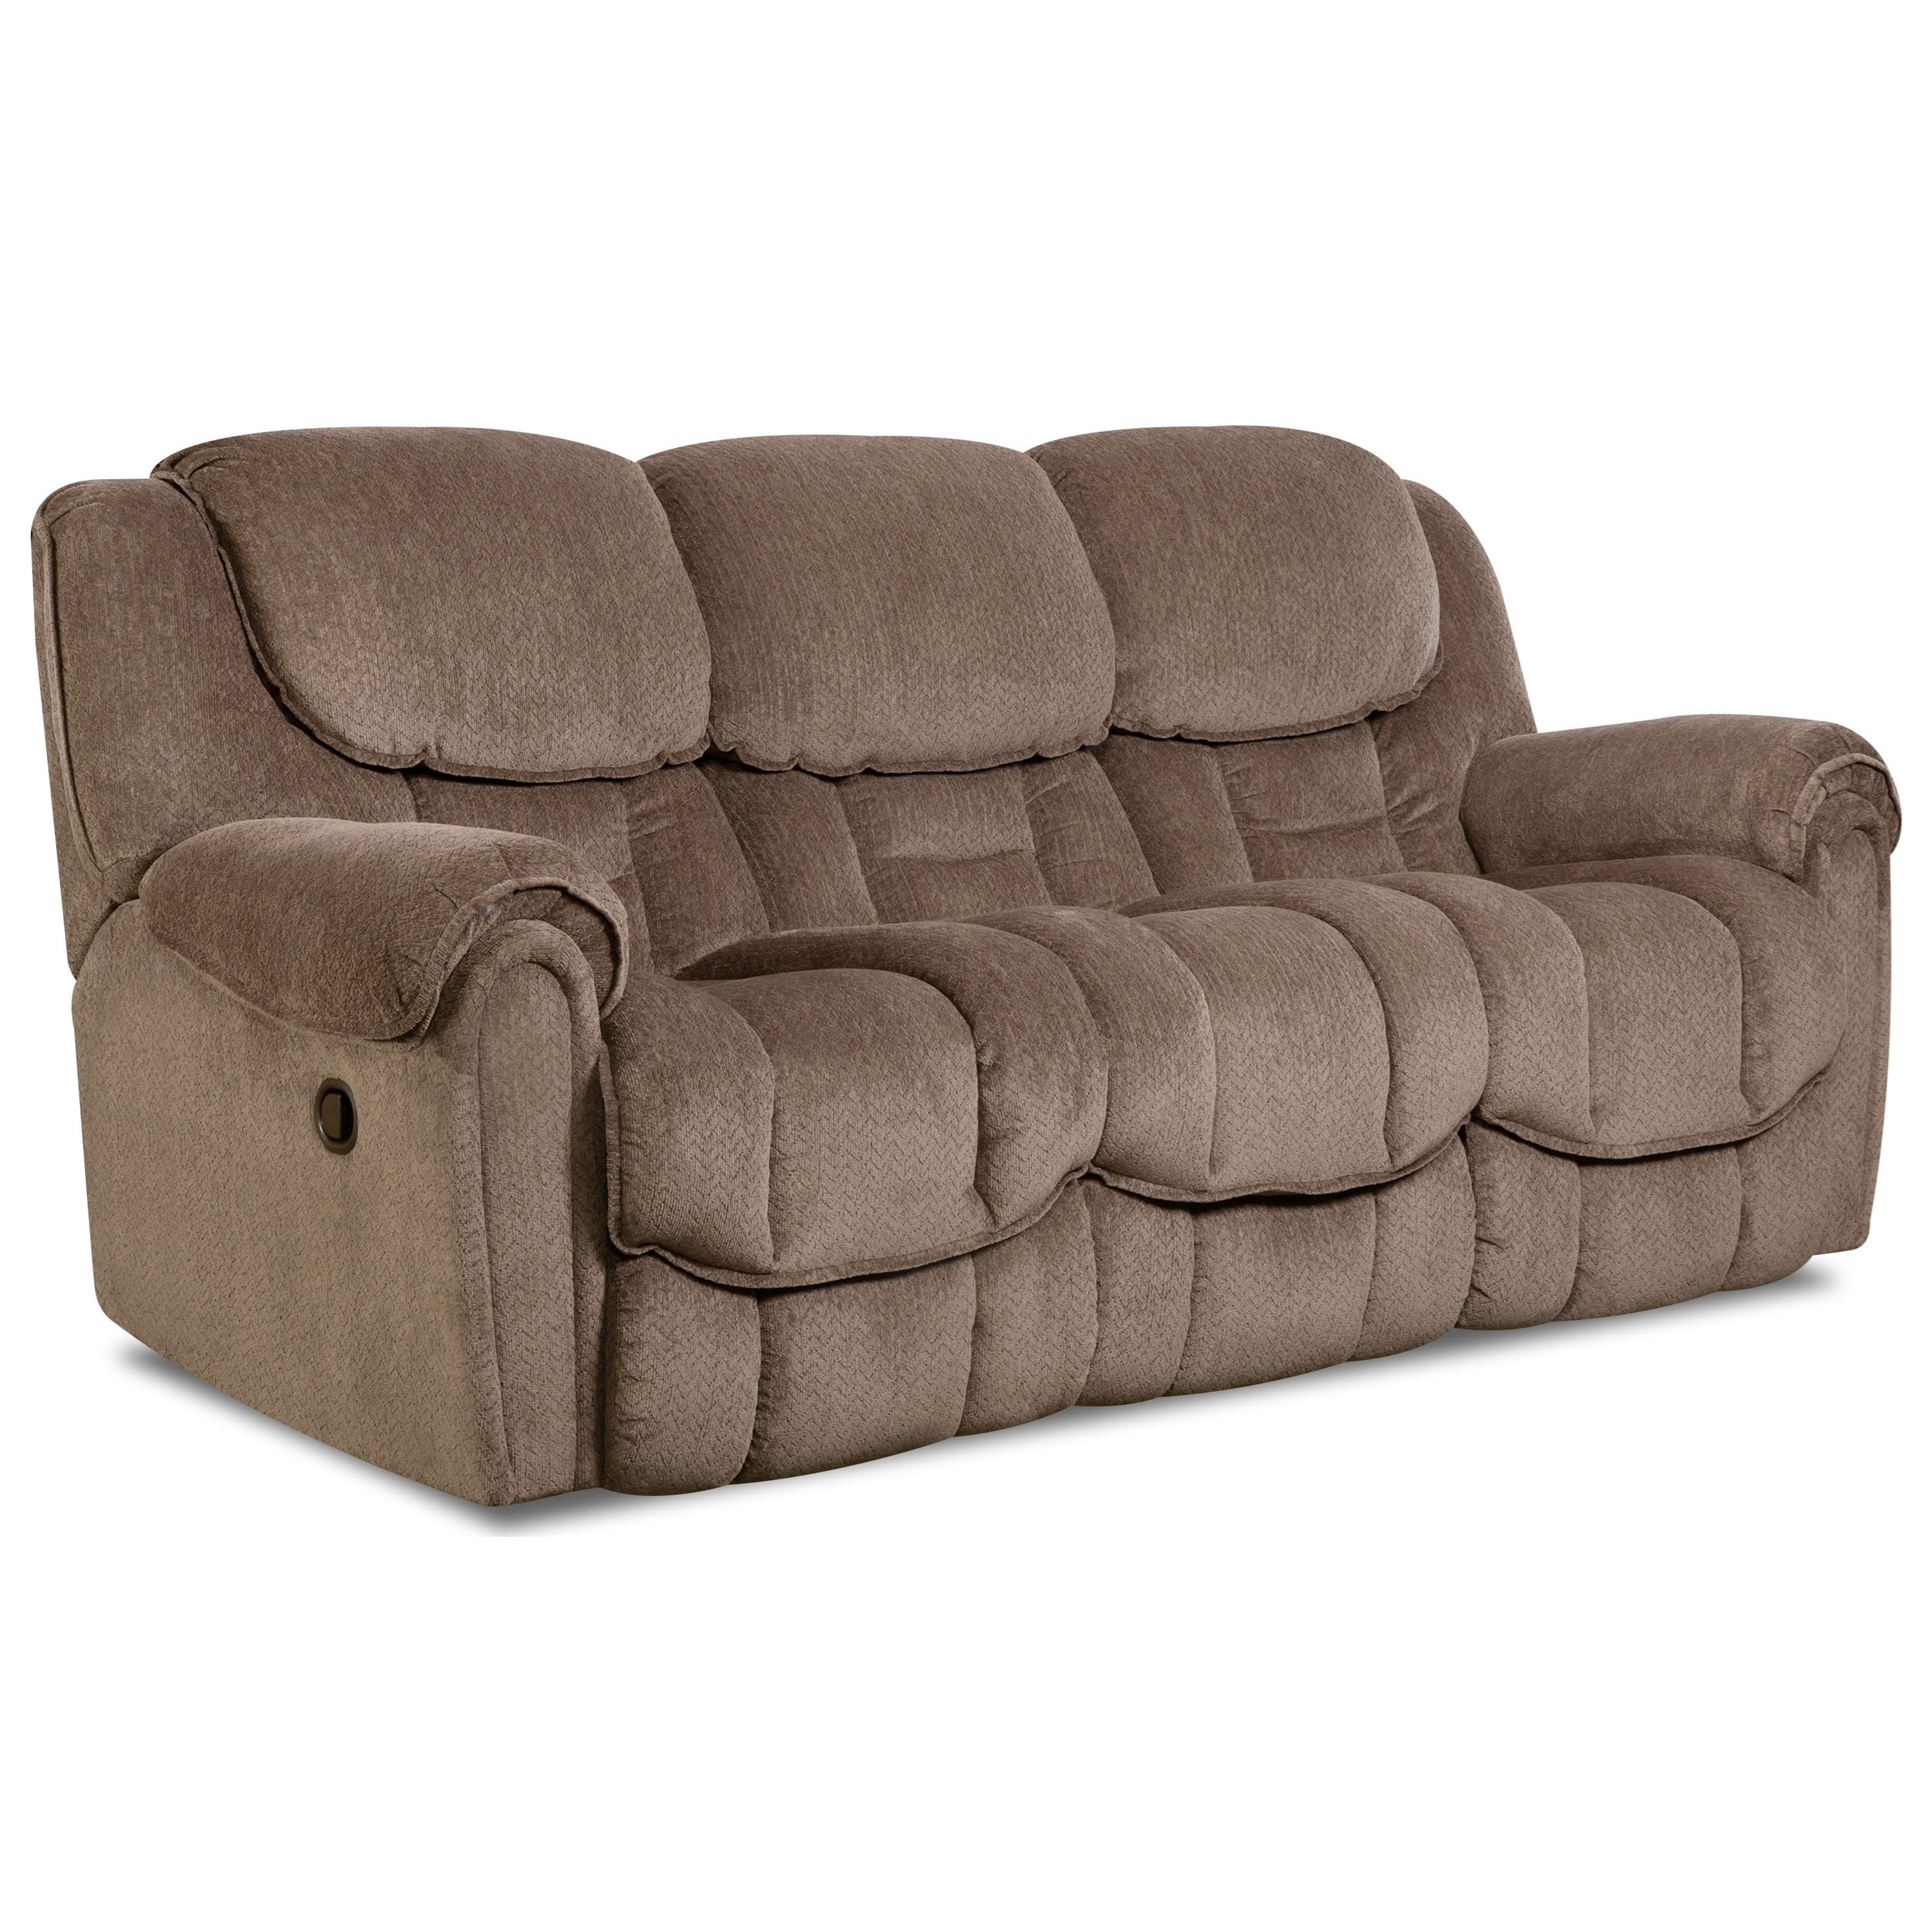 Baxter Casual Power Reclining Sofa